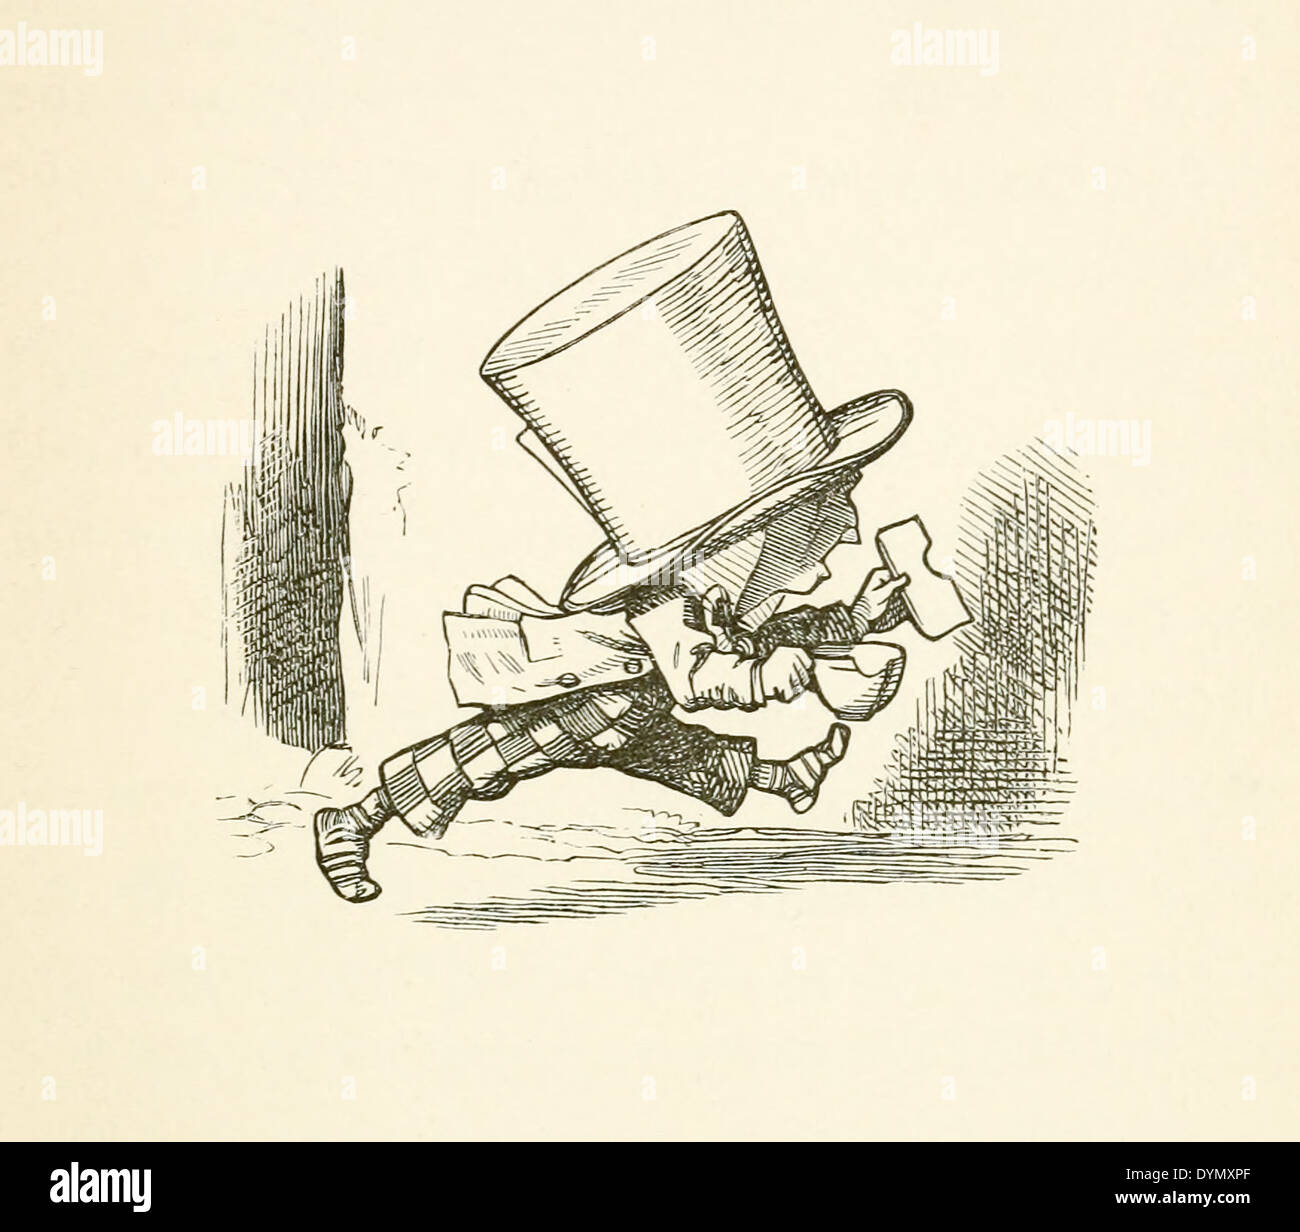 John Tenniel  (1820-1914) illustration from Lewis Carroll's 'Alice in Wonderland' published in 1865. The Hatter. - Stock Image